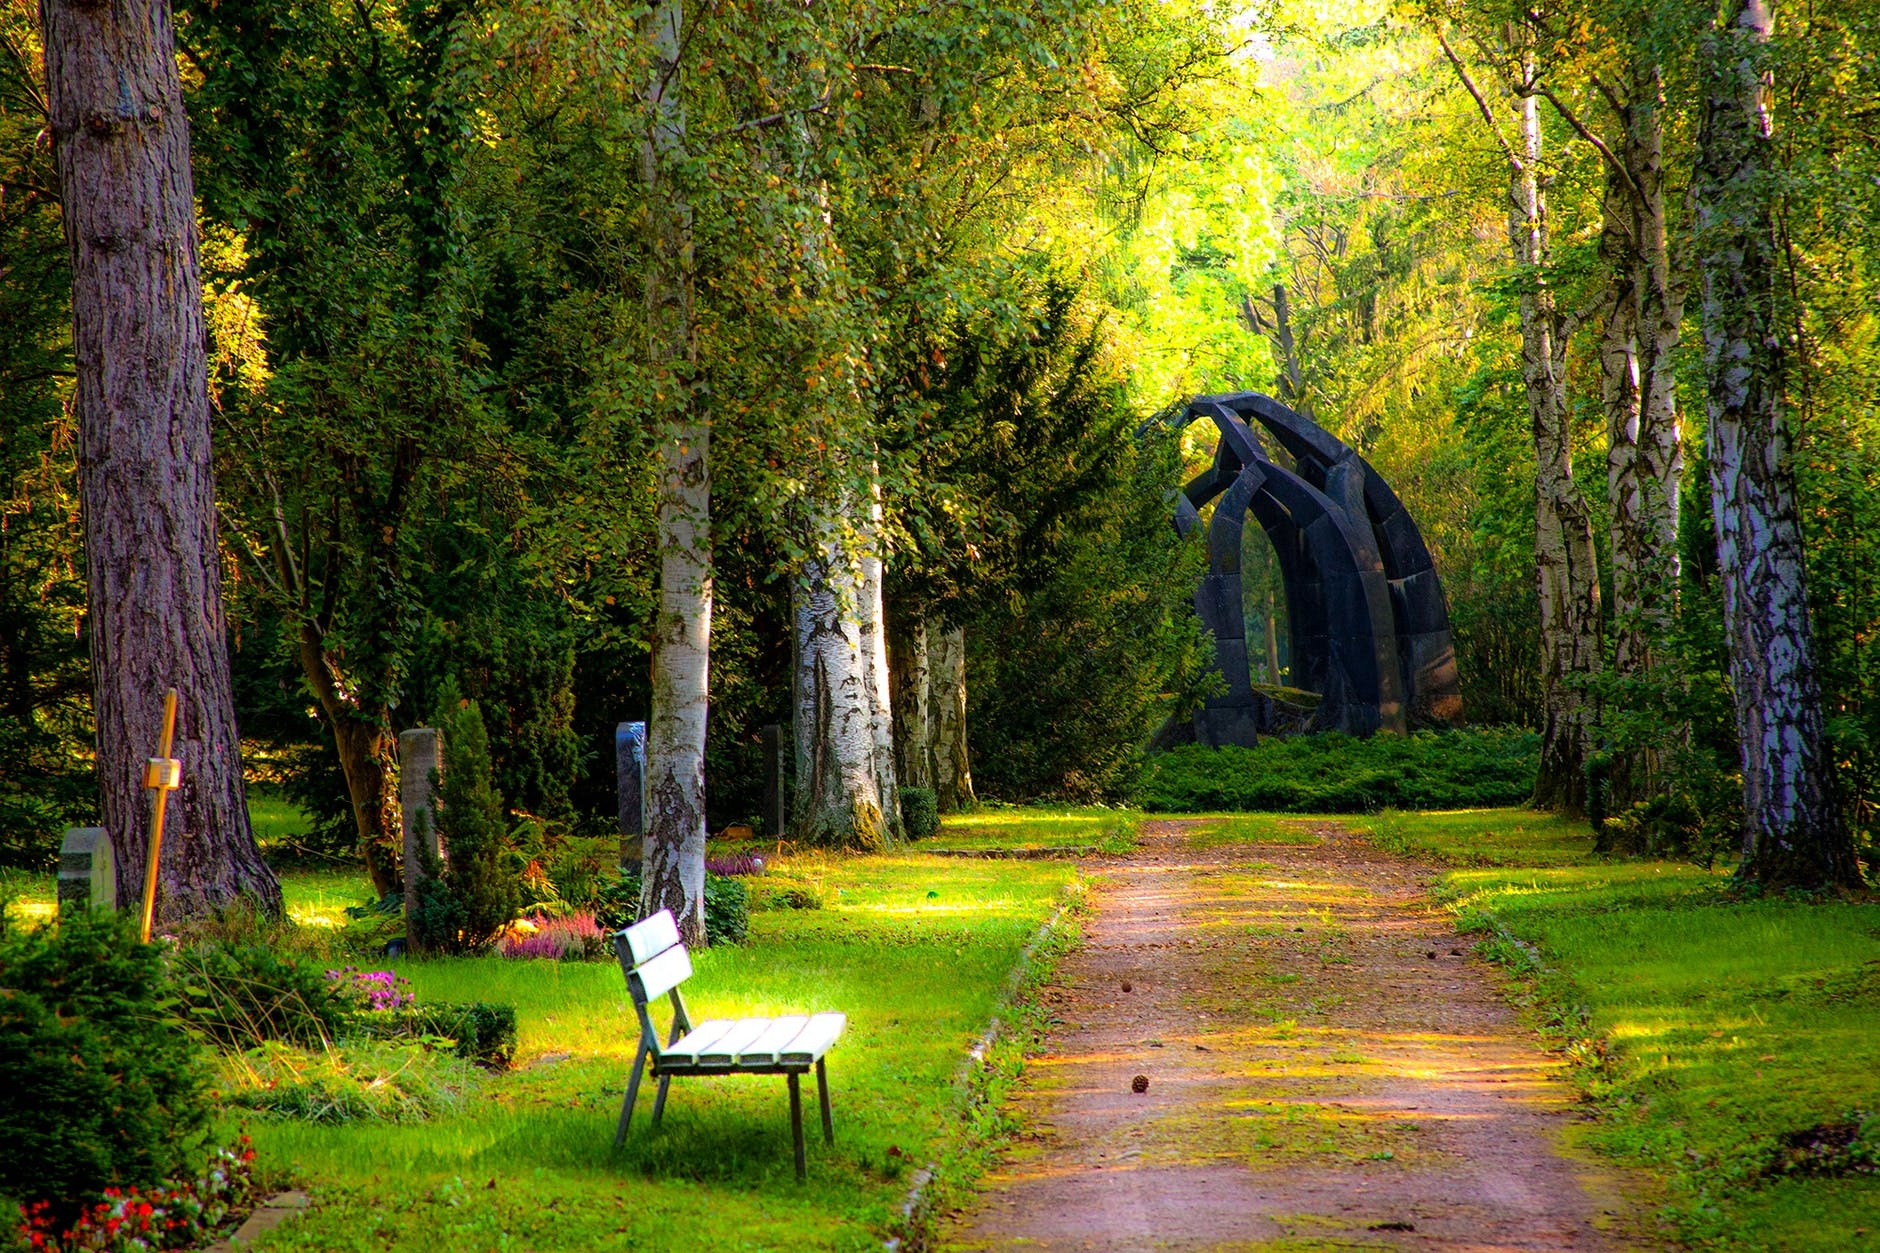 Garden with trees and bench